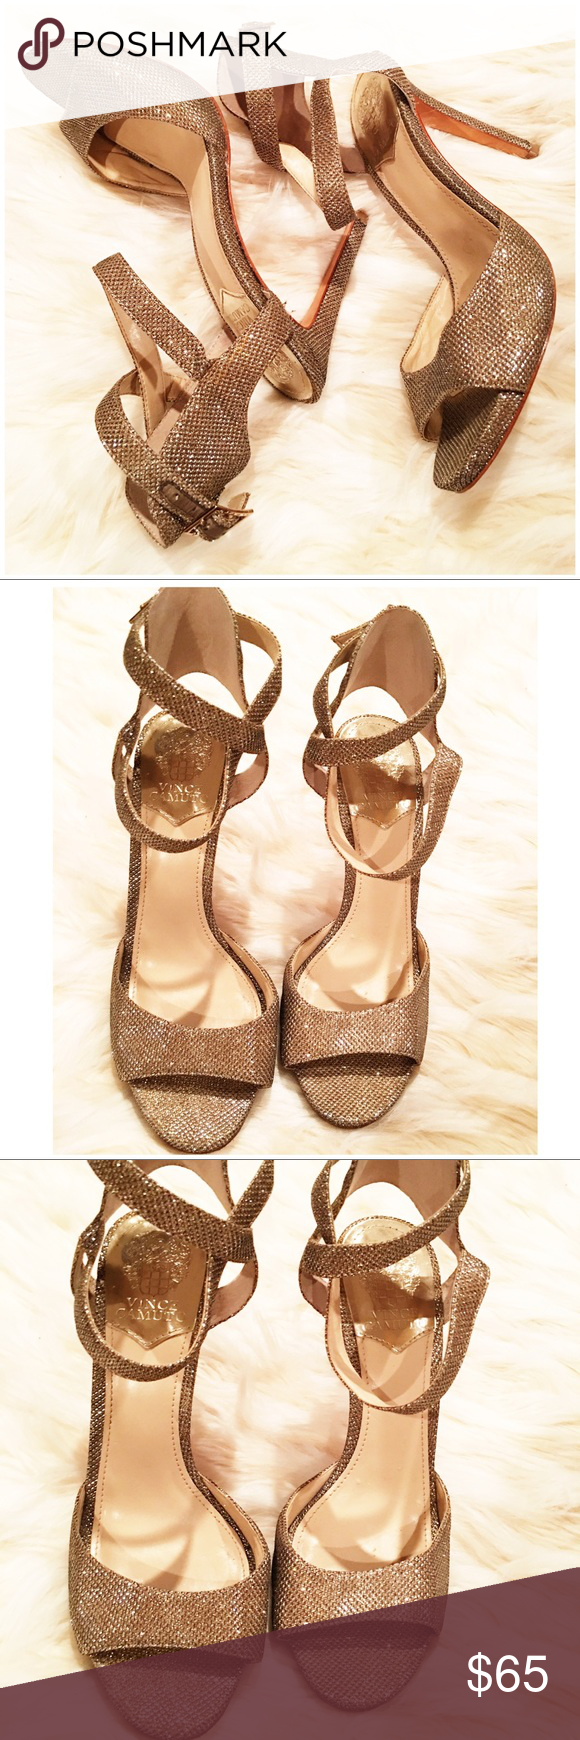 Vince Camuto faunora winter gold sparkle heels Gold